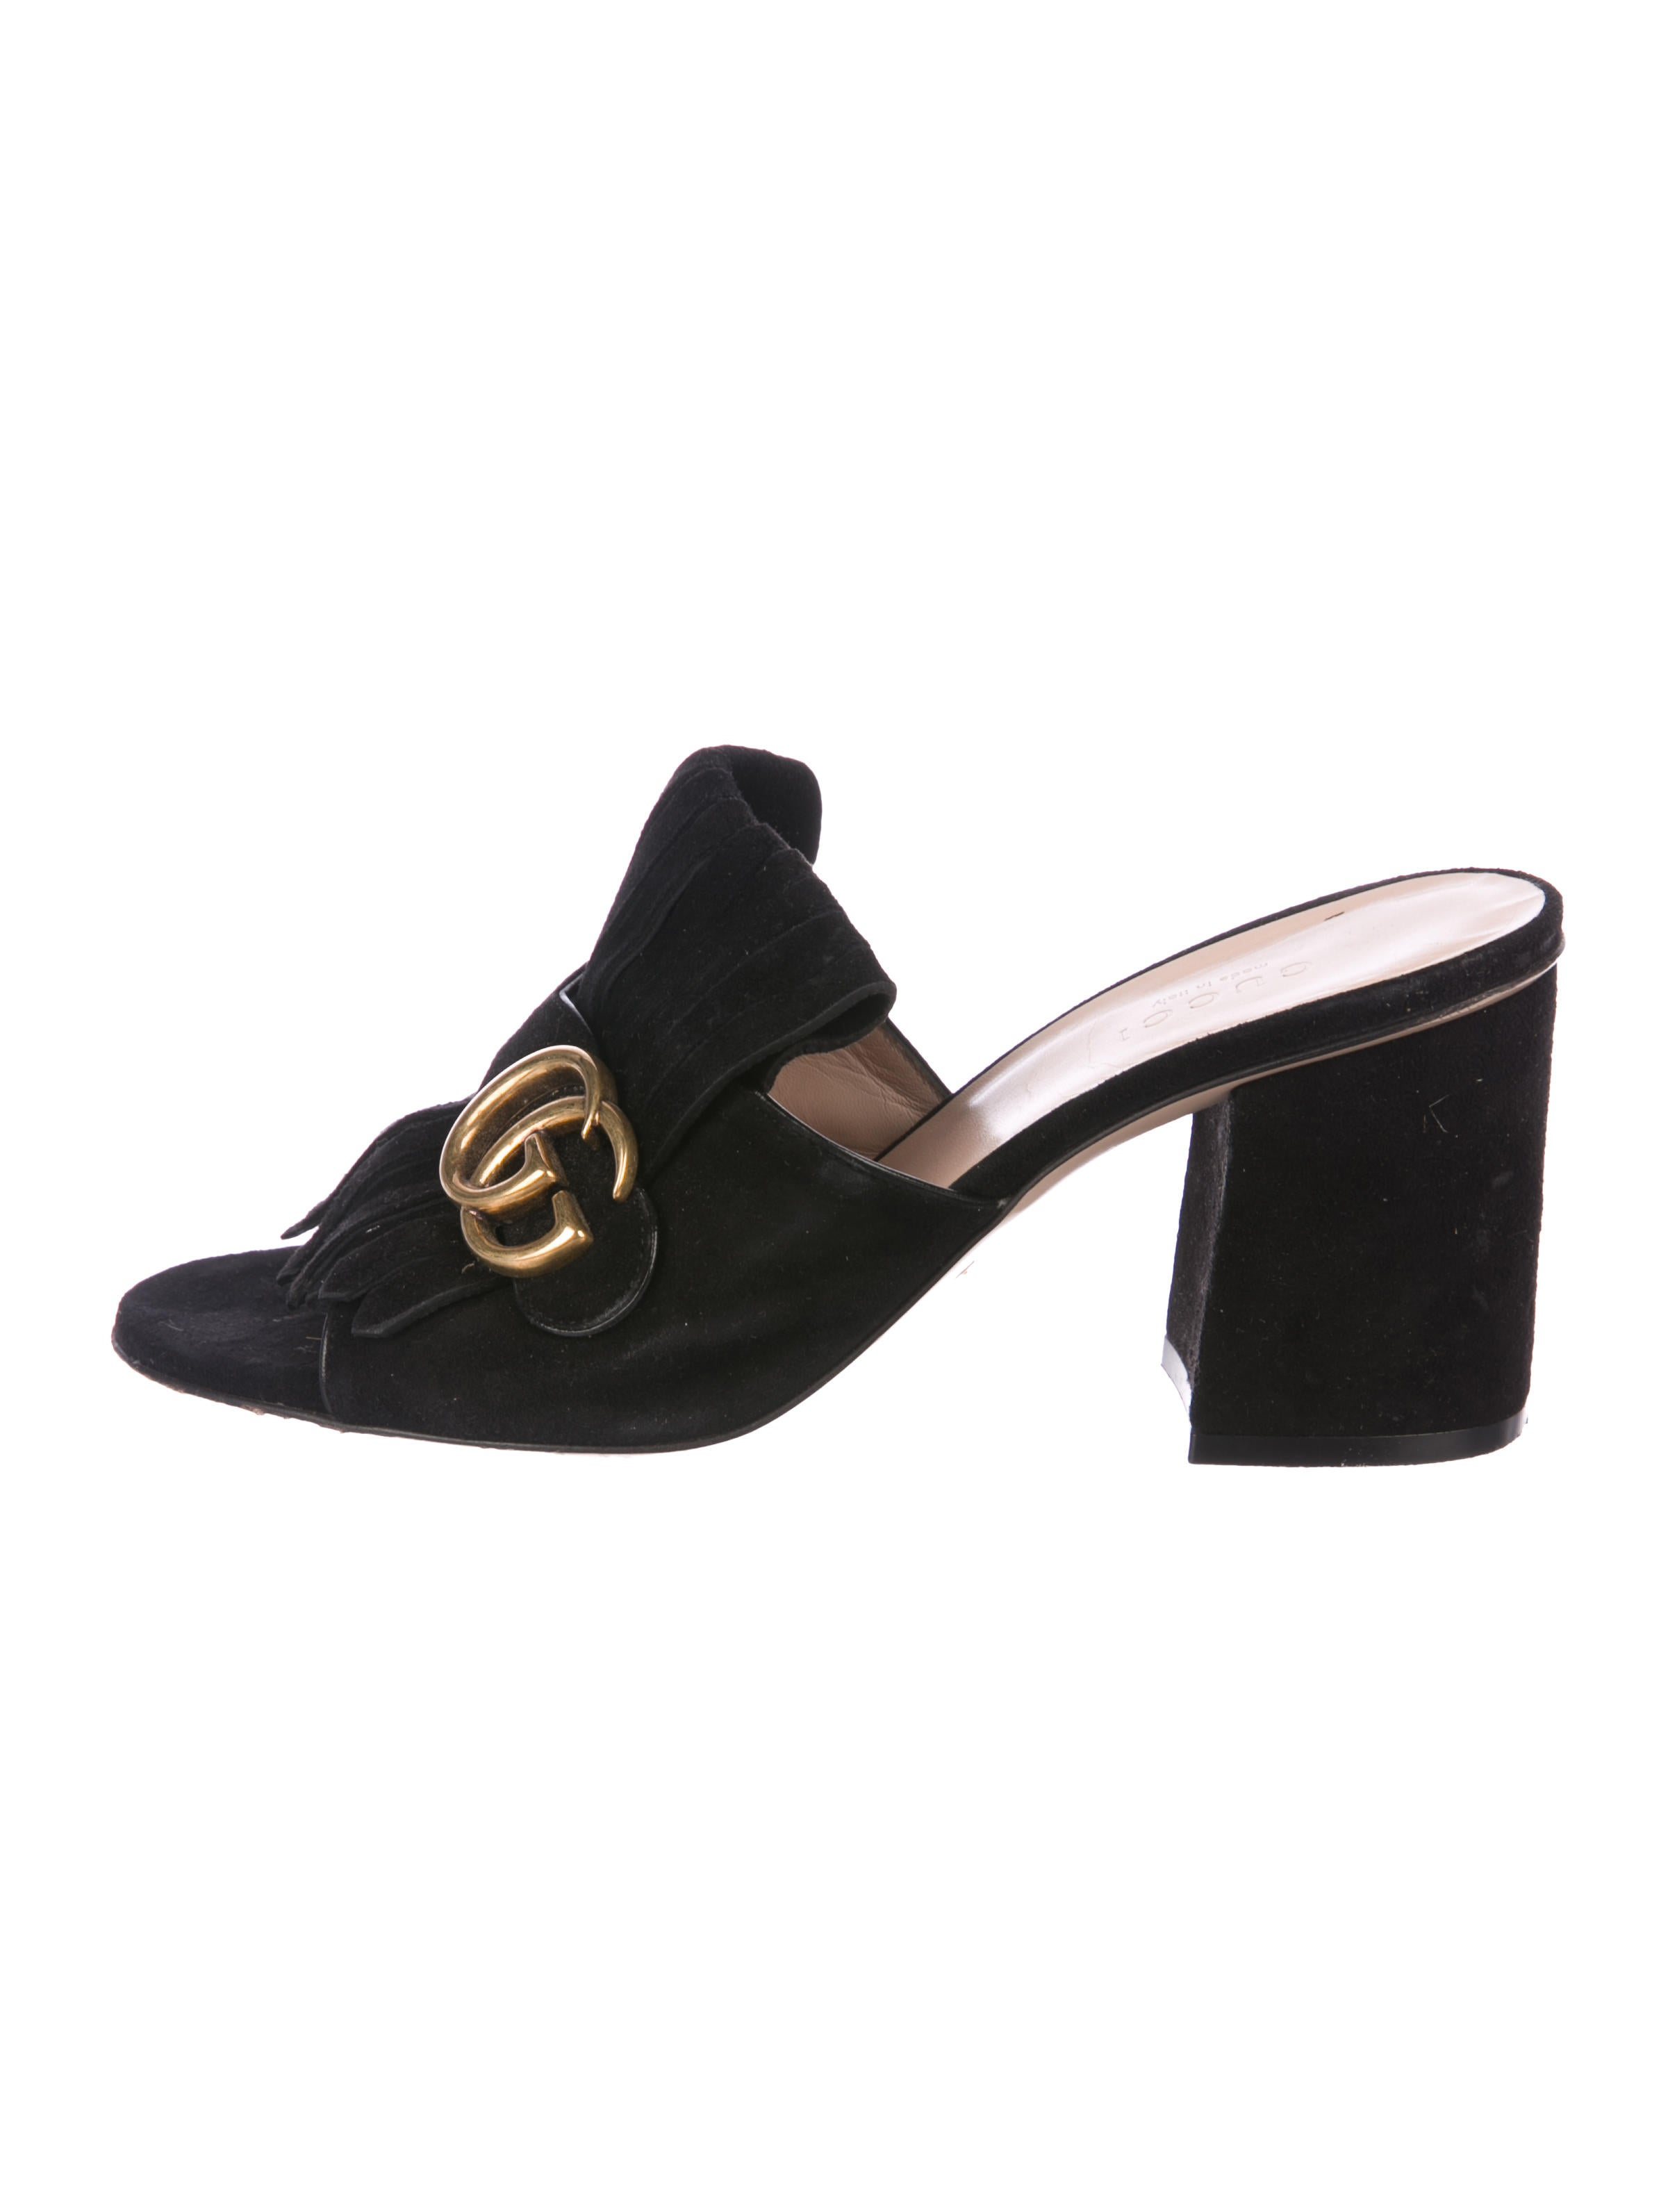 20f57b3f1 Gucci GG Peep-Toe Mules - Shoes - GUC225940 | The RealReal